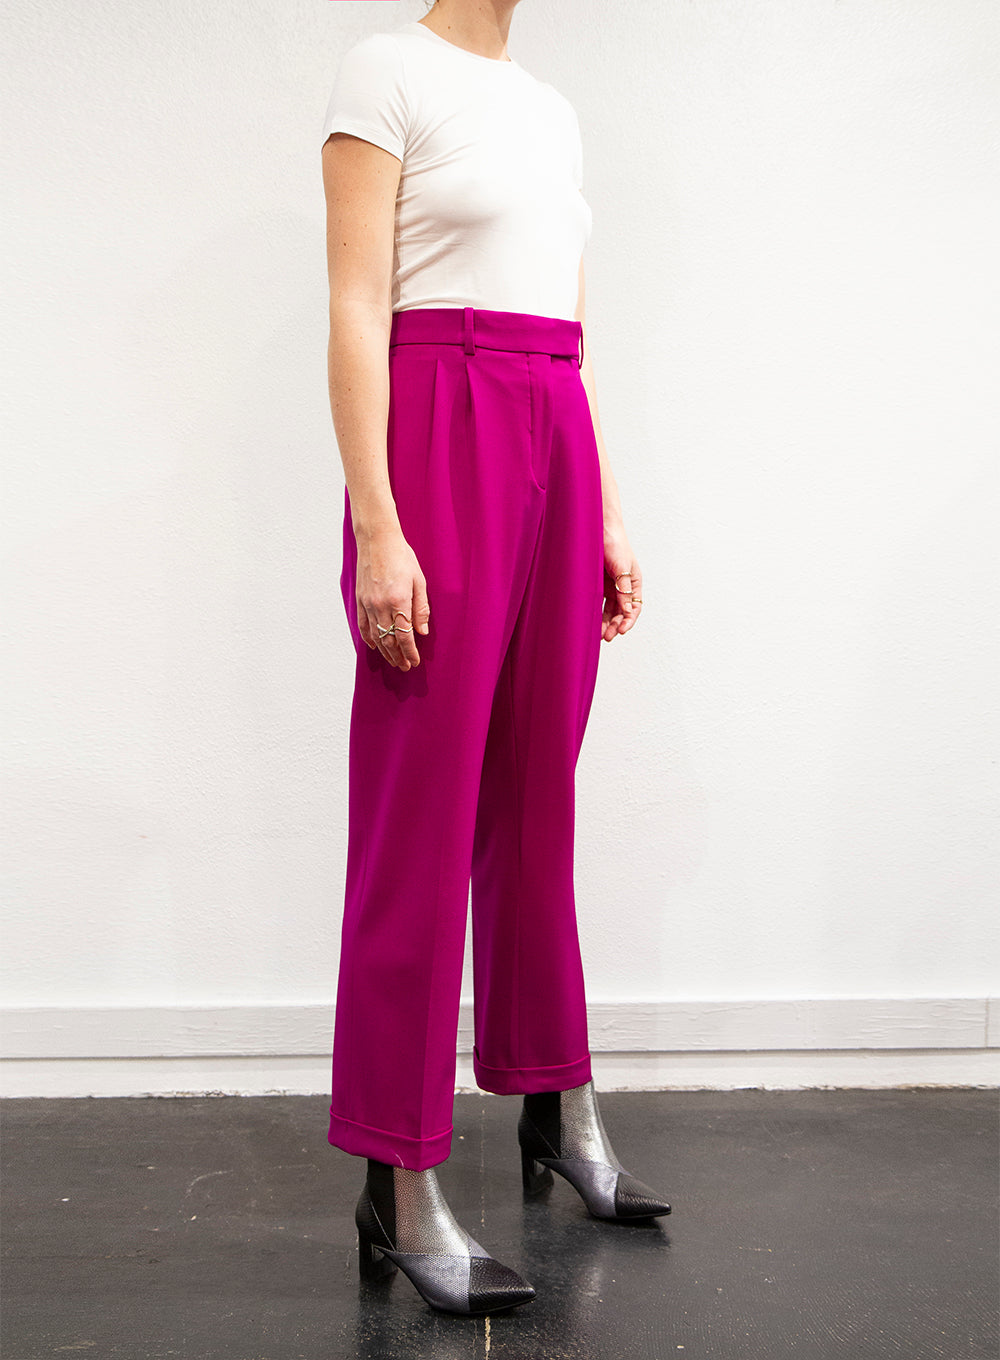 CALVIN KLEIN 205W39NYC | Magenta Stretch Wool Satin Gabardine Pants